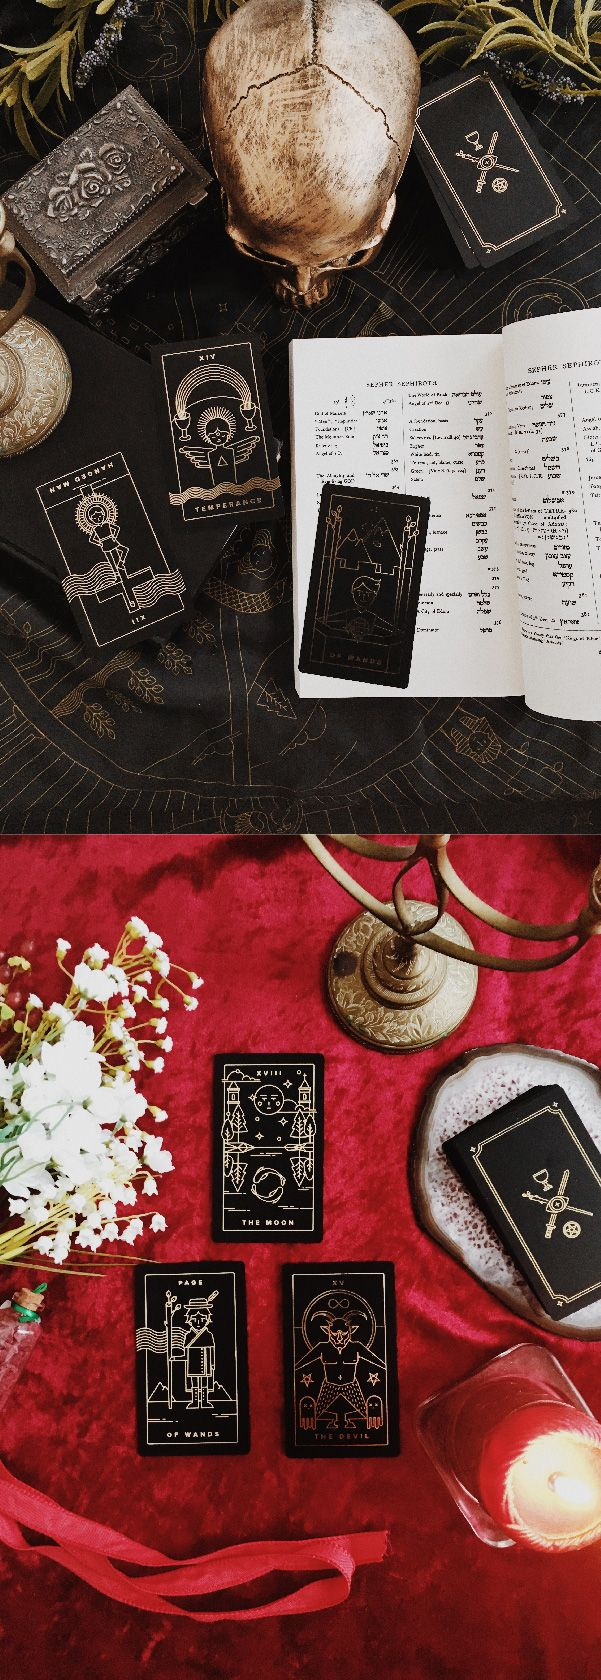 Golden Thread Tarot Deck, A Modern Minimal Tarot Card Set. For tarot beginners, and everyone interested in witchcraft, wicca, spells, mysticism, occult, magick, tarot reading, paganism, gothic, gothic art, indie tarot deck, unique tarot deck, dark tarot deck, gold foil tarot deck.